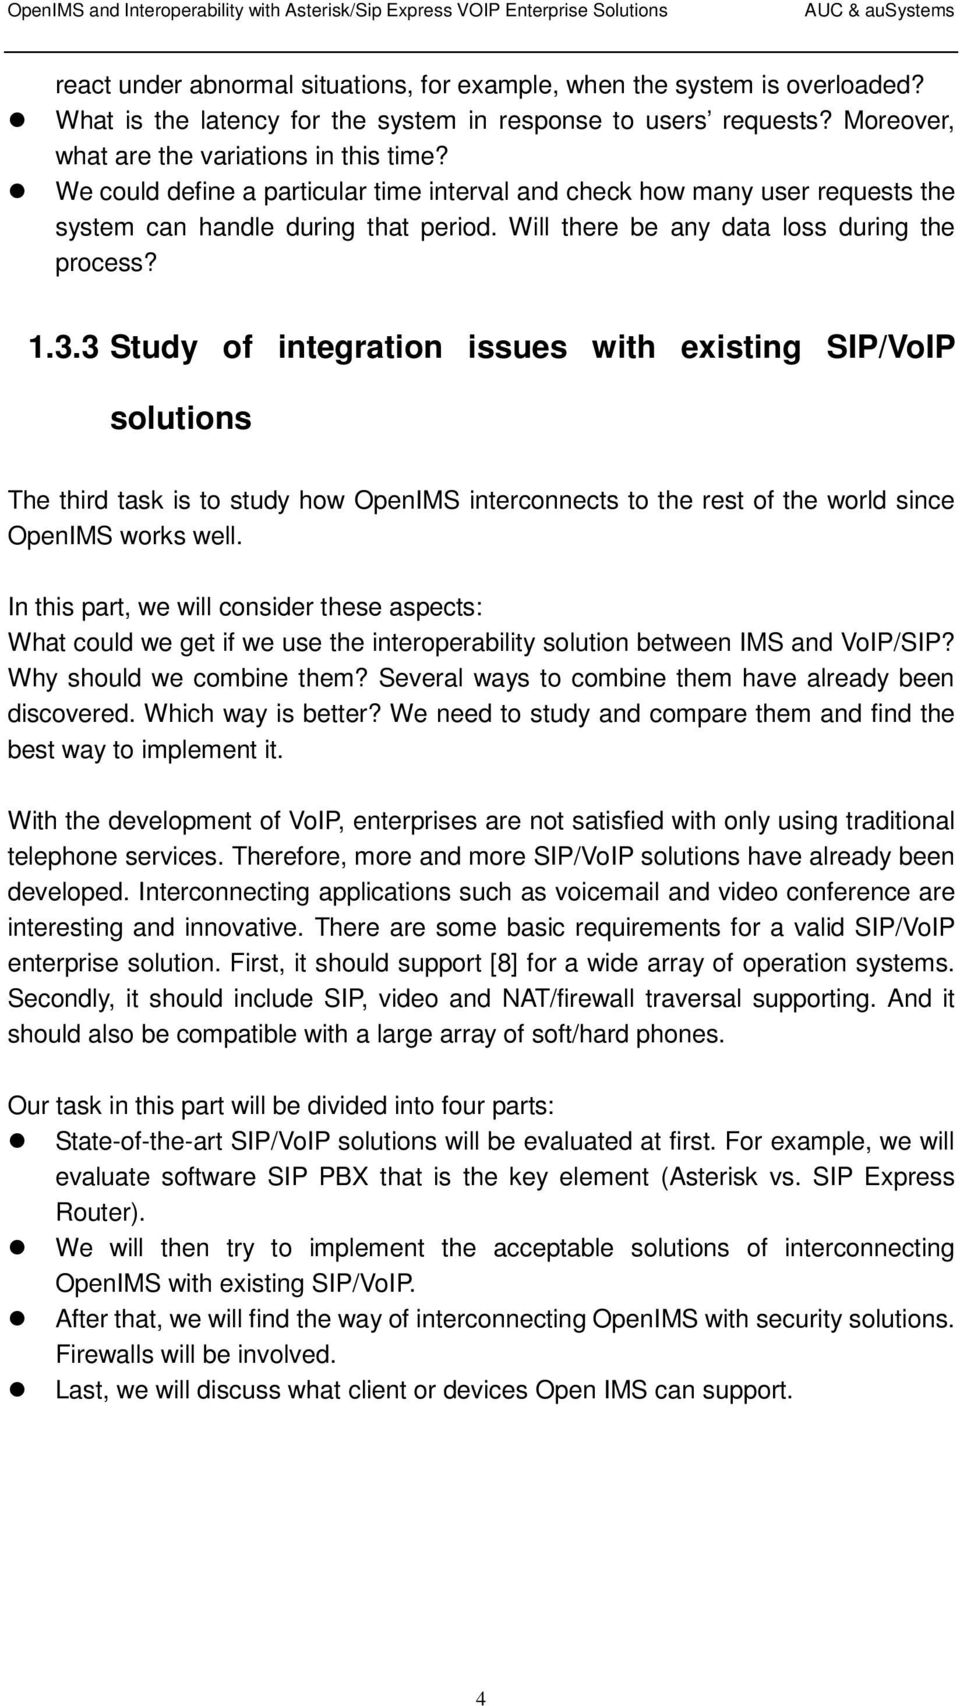 3 Study of integration issues with existing SIP/VoIP solutions The third task is to study how OpenIMS interconnects to the rest of the world since OpenIMS works well.